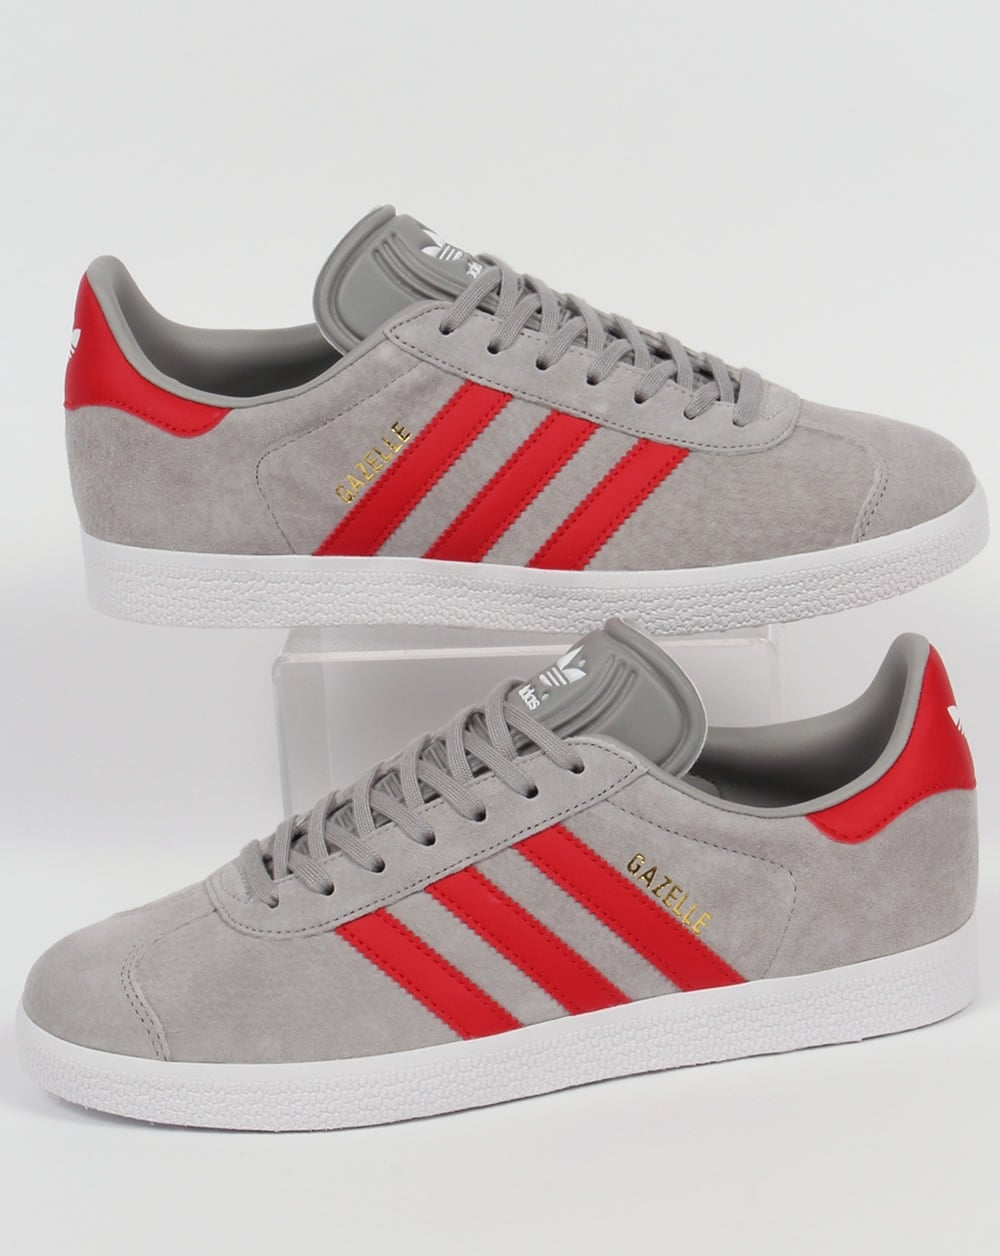 887adcc88d7 adidas Trainers Adidas Gazelle Trainers Solid Grey Red